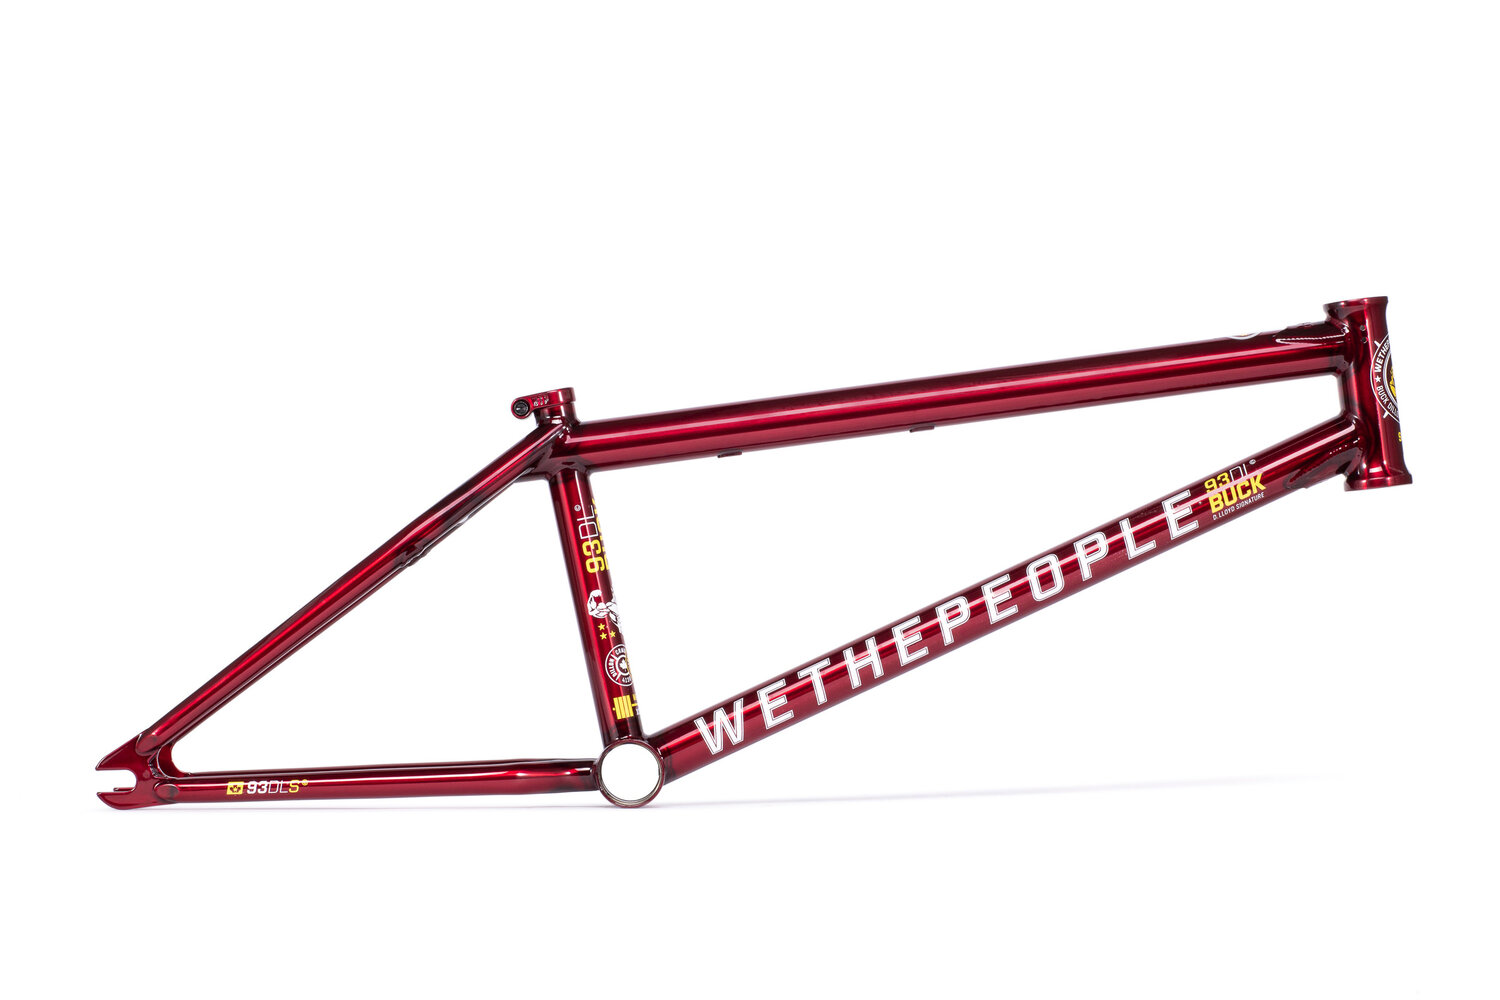 2021 BUCK Frames Now Available